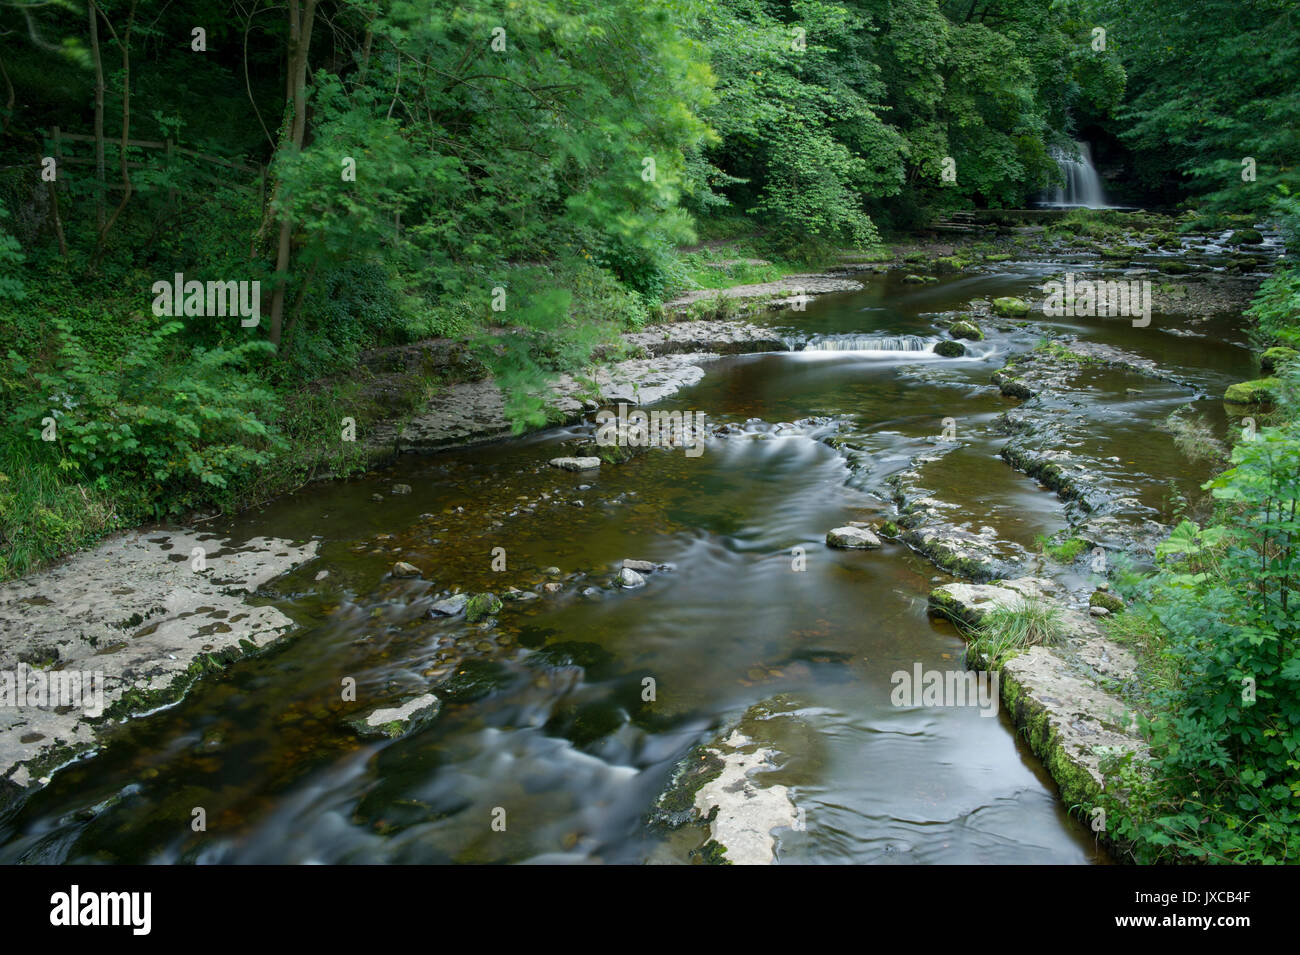 Cauldron Falls Waterfall in the village of West Burton near Hawes in the Yorkshire Dales National Park, North Yorkshire, - Stock Image